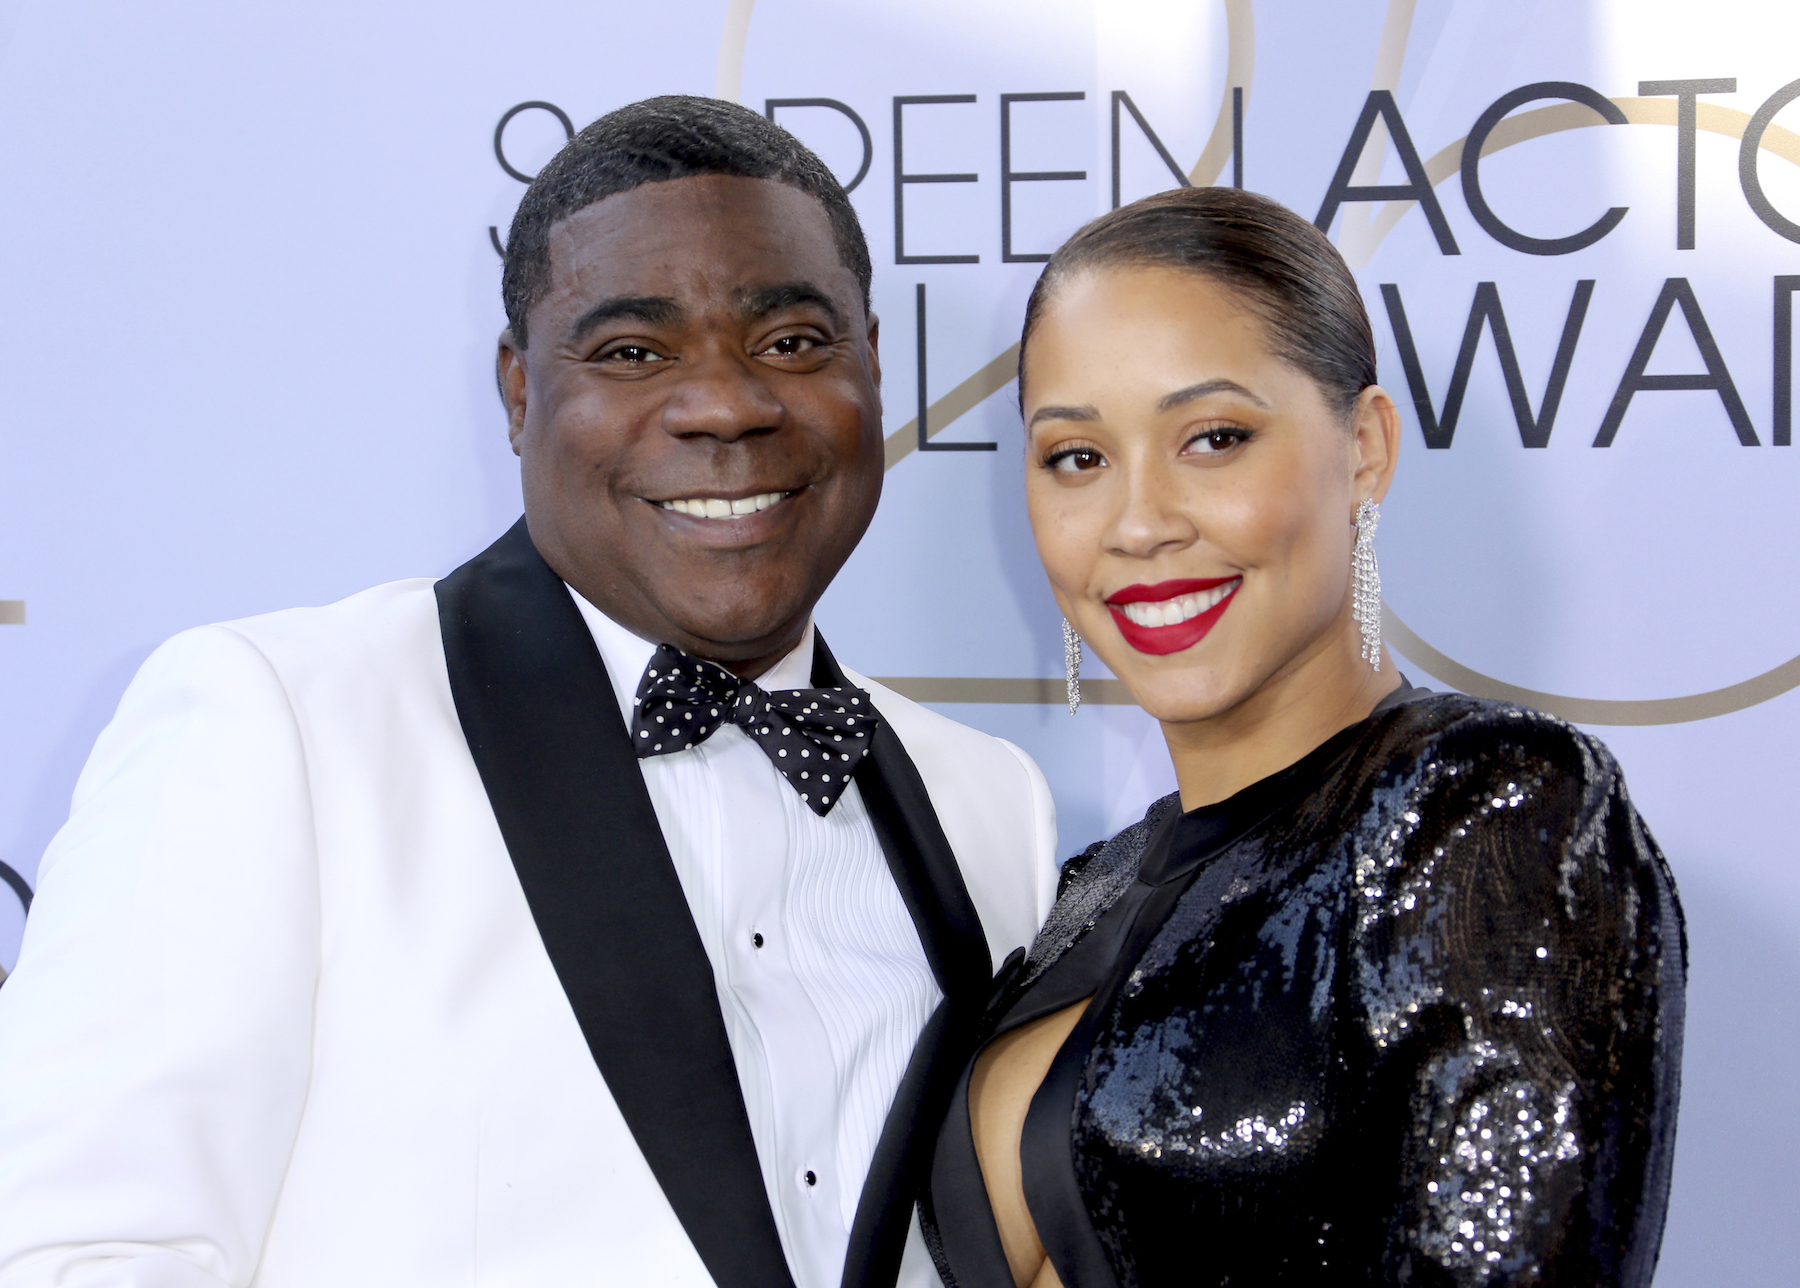 <div class='meta'><div class='origin-logo' data-origin='AP'></div><span class='caption-text' data-credit='Willy Sanjuan/Invision/AP'>Tracy Morgan, left, and Megan Wollover arrive at the 25th annual Screen Actors Guild Awards at the Shrine Auditorium & Expo Hall on Sunday, Jan. 27, 2019, in Los Angeles.</span></div>